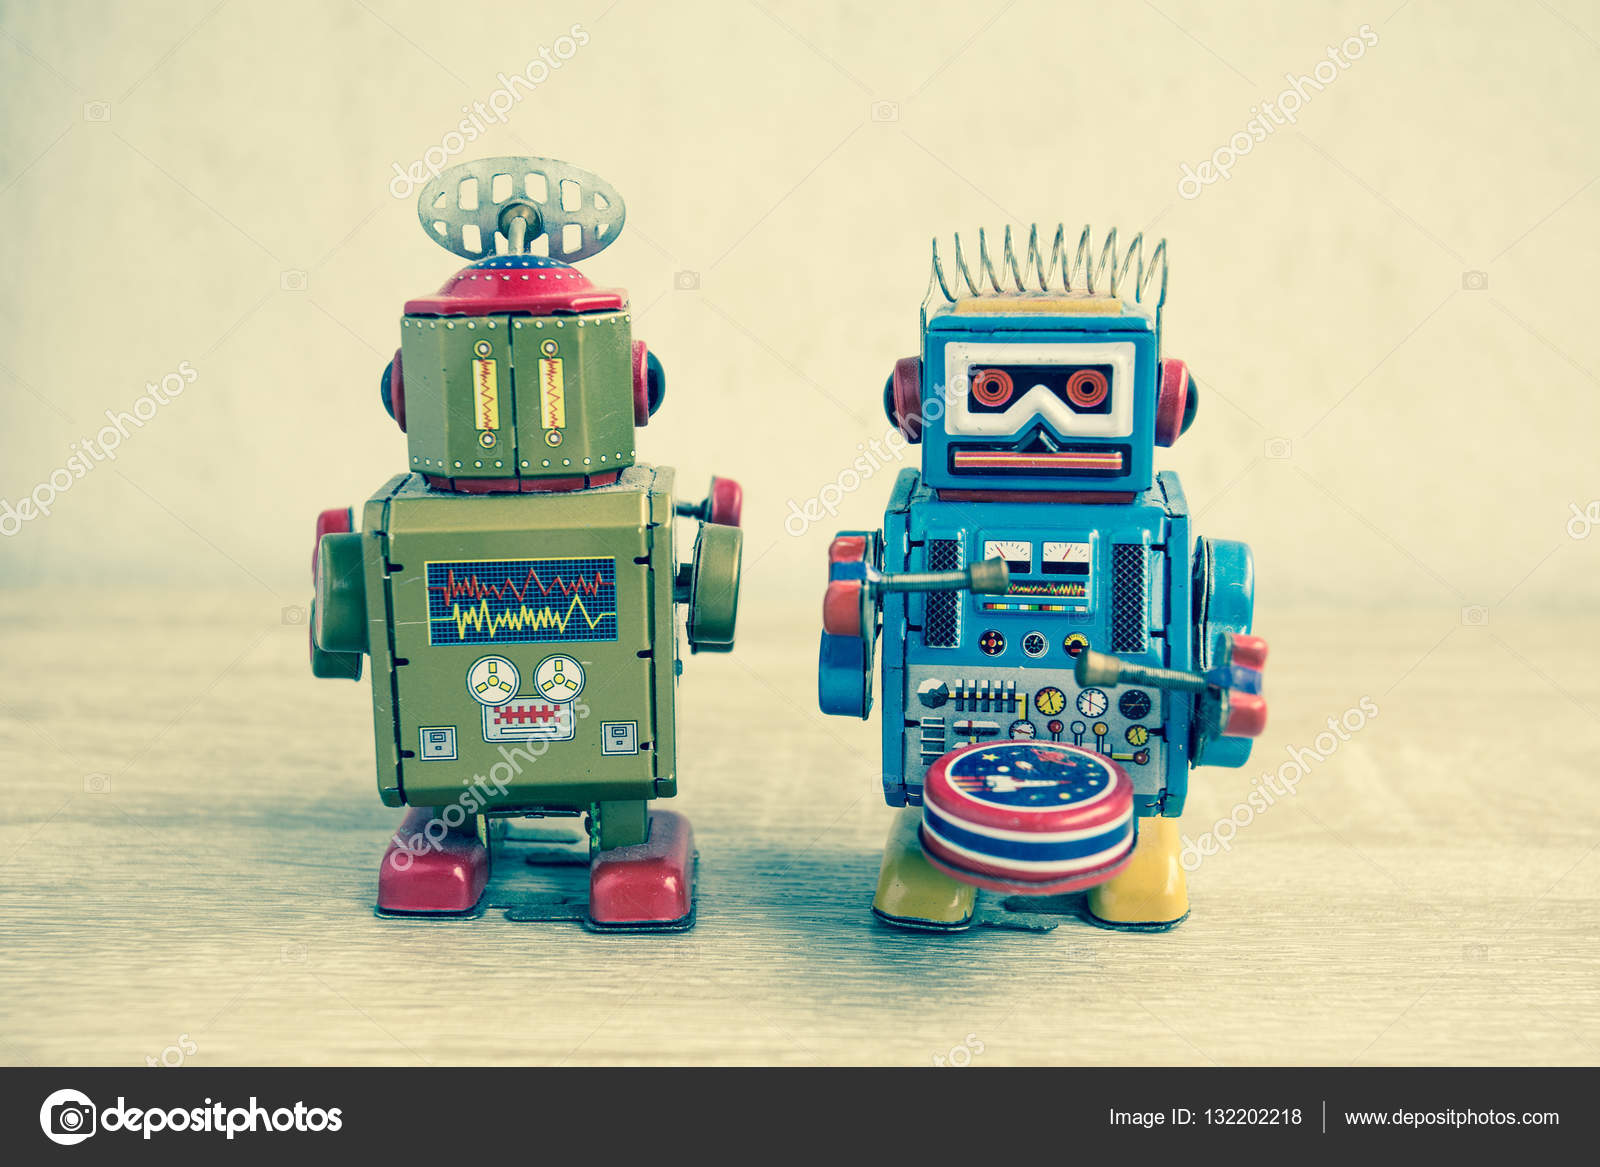 old robot toy on wood table vintage color style stock photo popunderlight 132202218. Black Bedroom Furniture Sets. Home Design Ideas